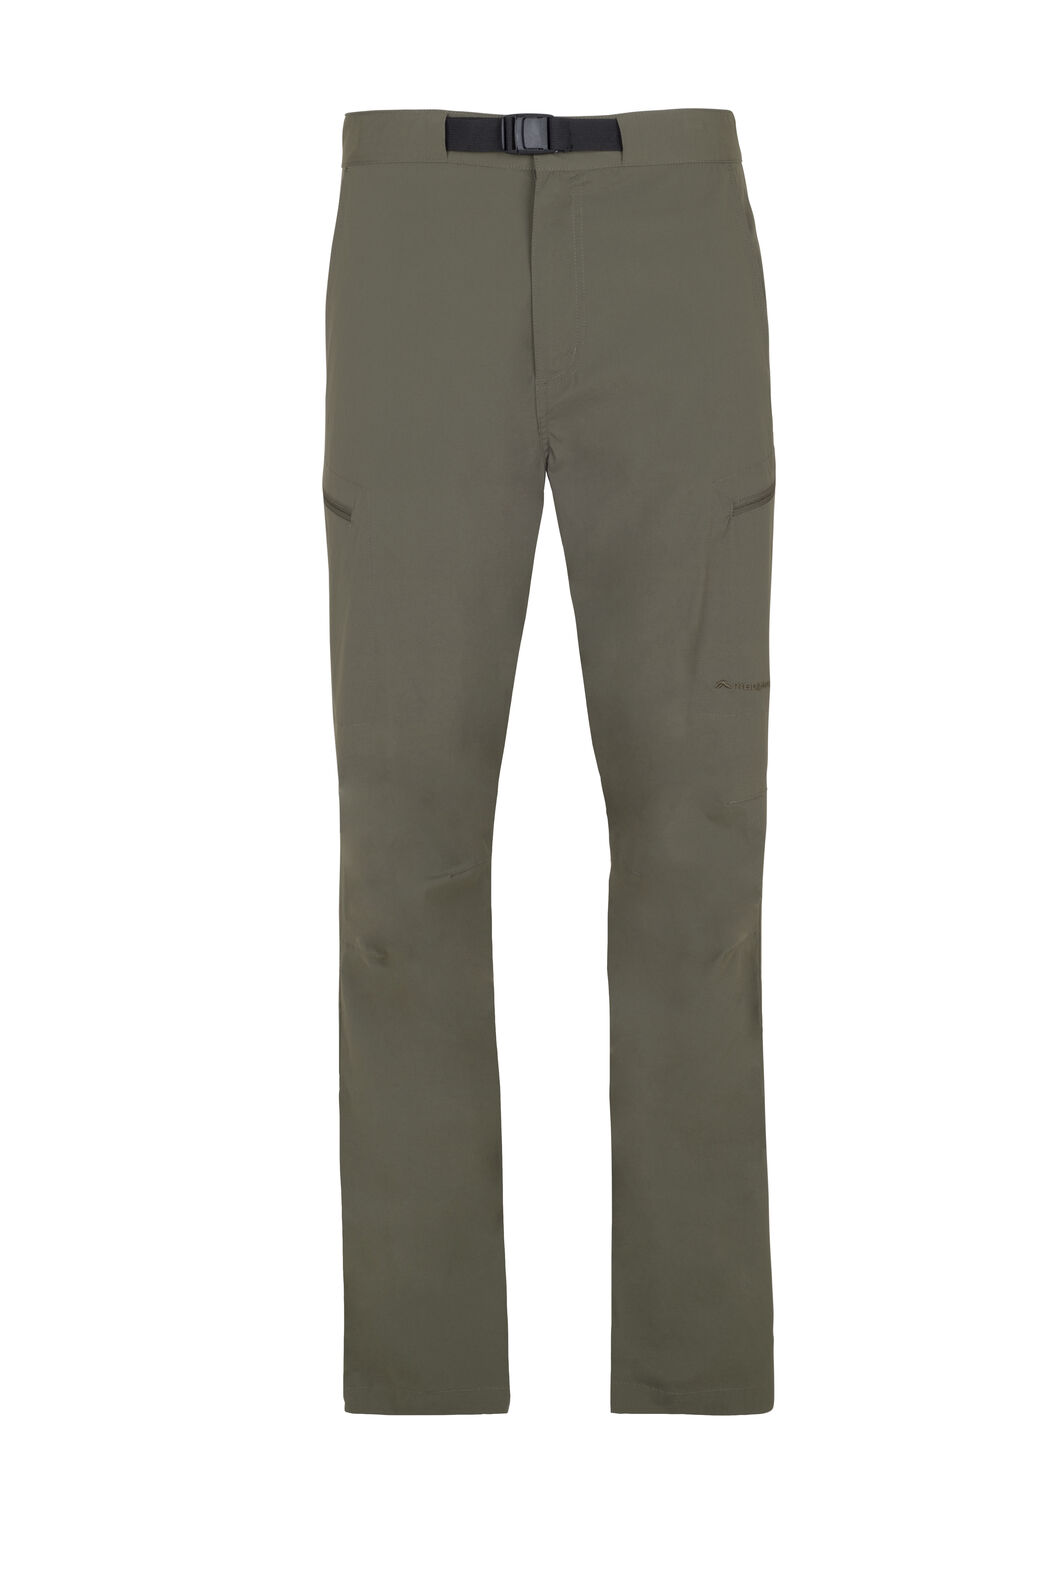 Macpac Drift Pants - Men's, Grape Leaf, hi-res